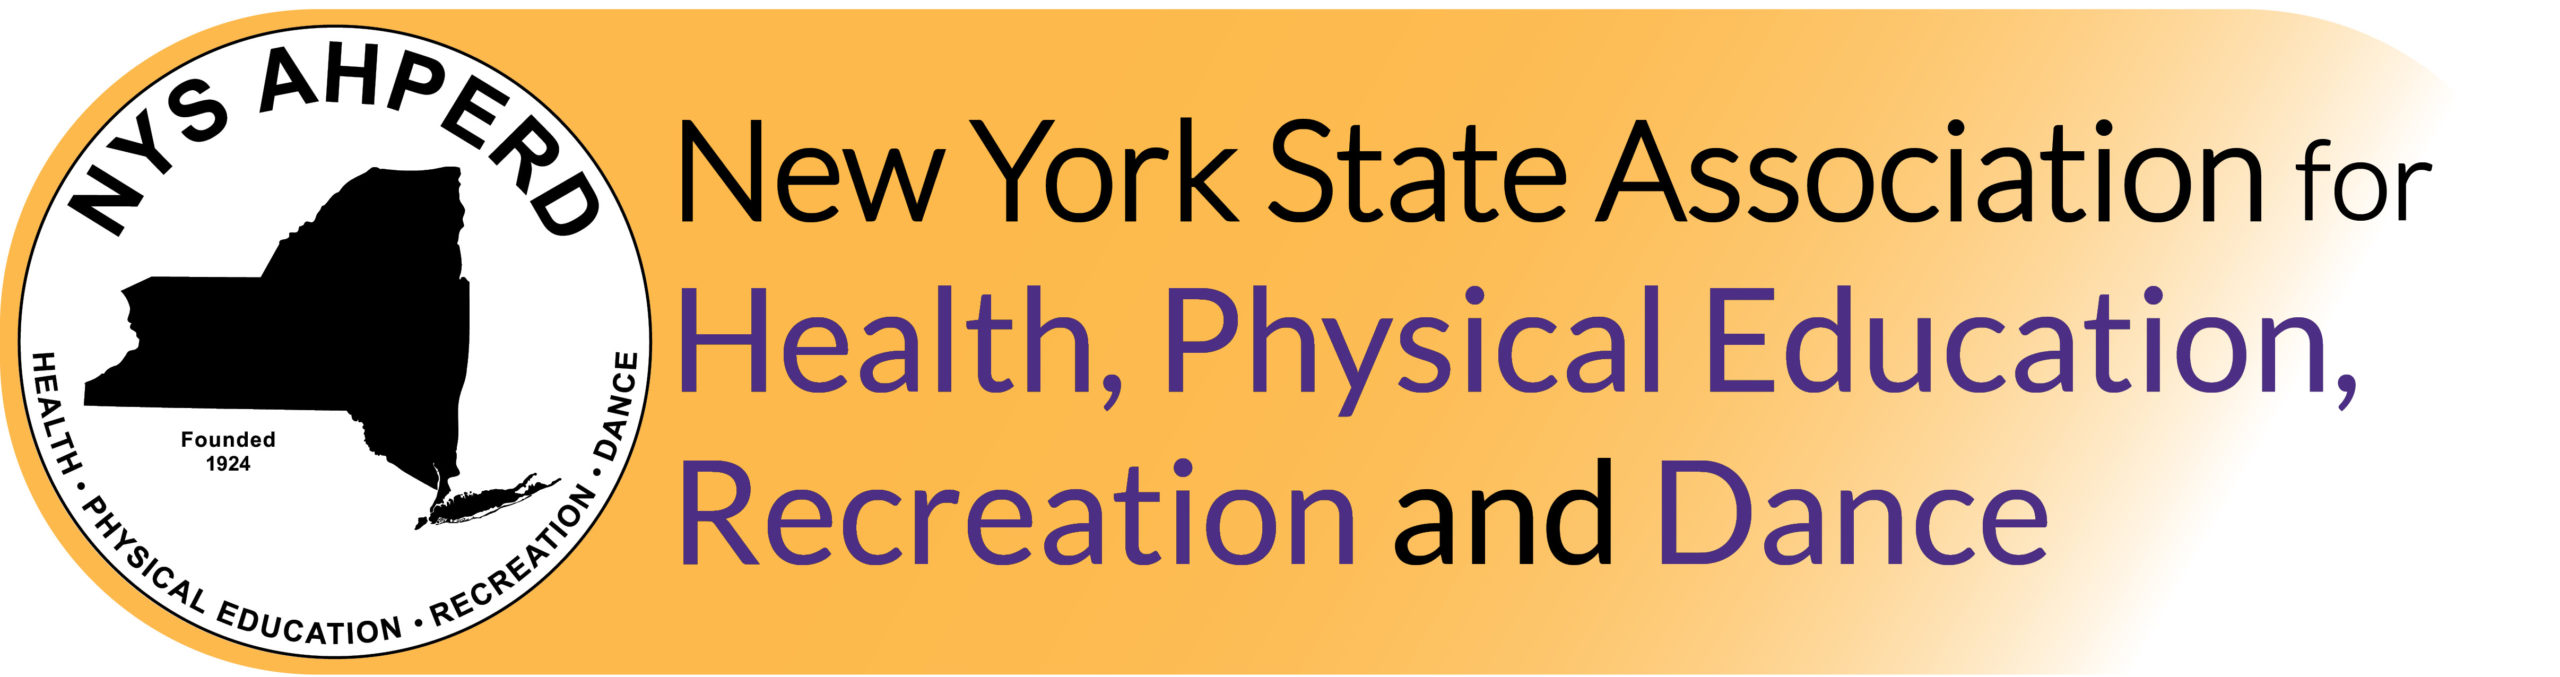 NYS Association for Health, Physical Education, Recreation and Dance